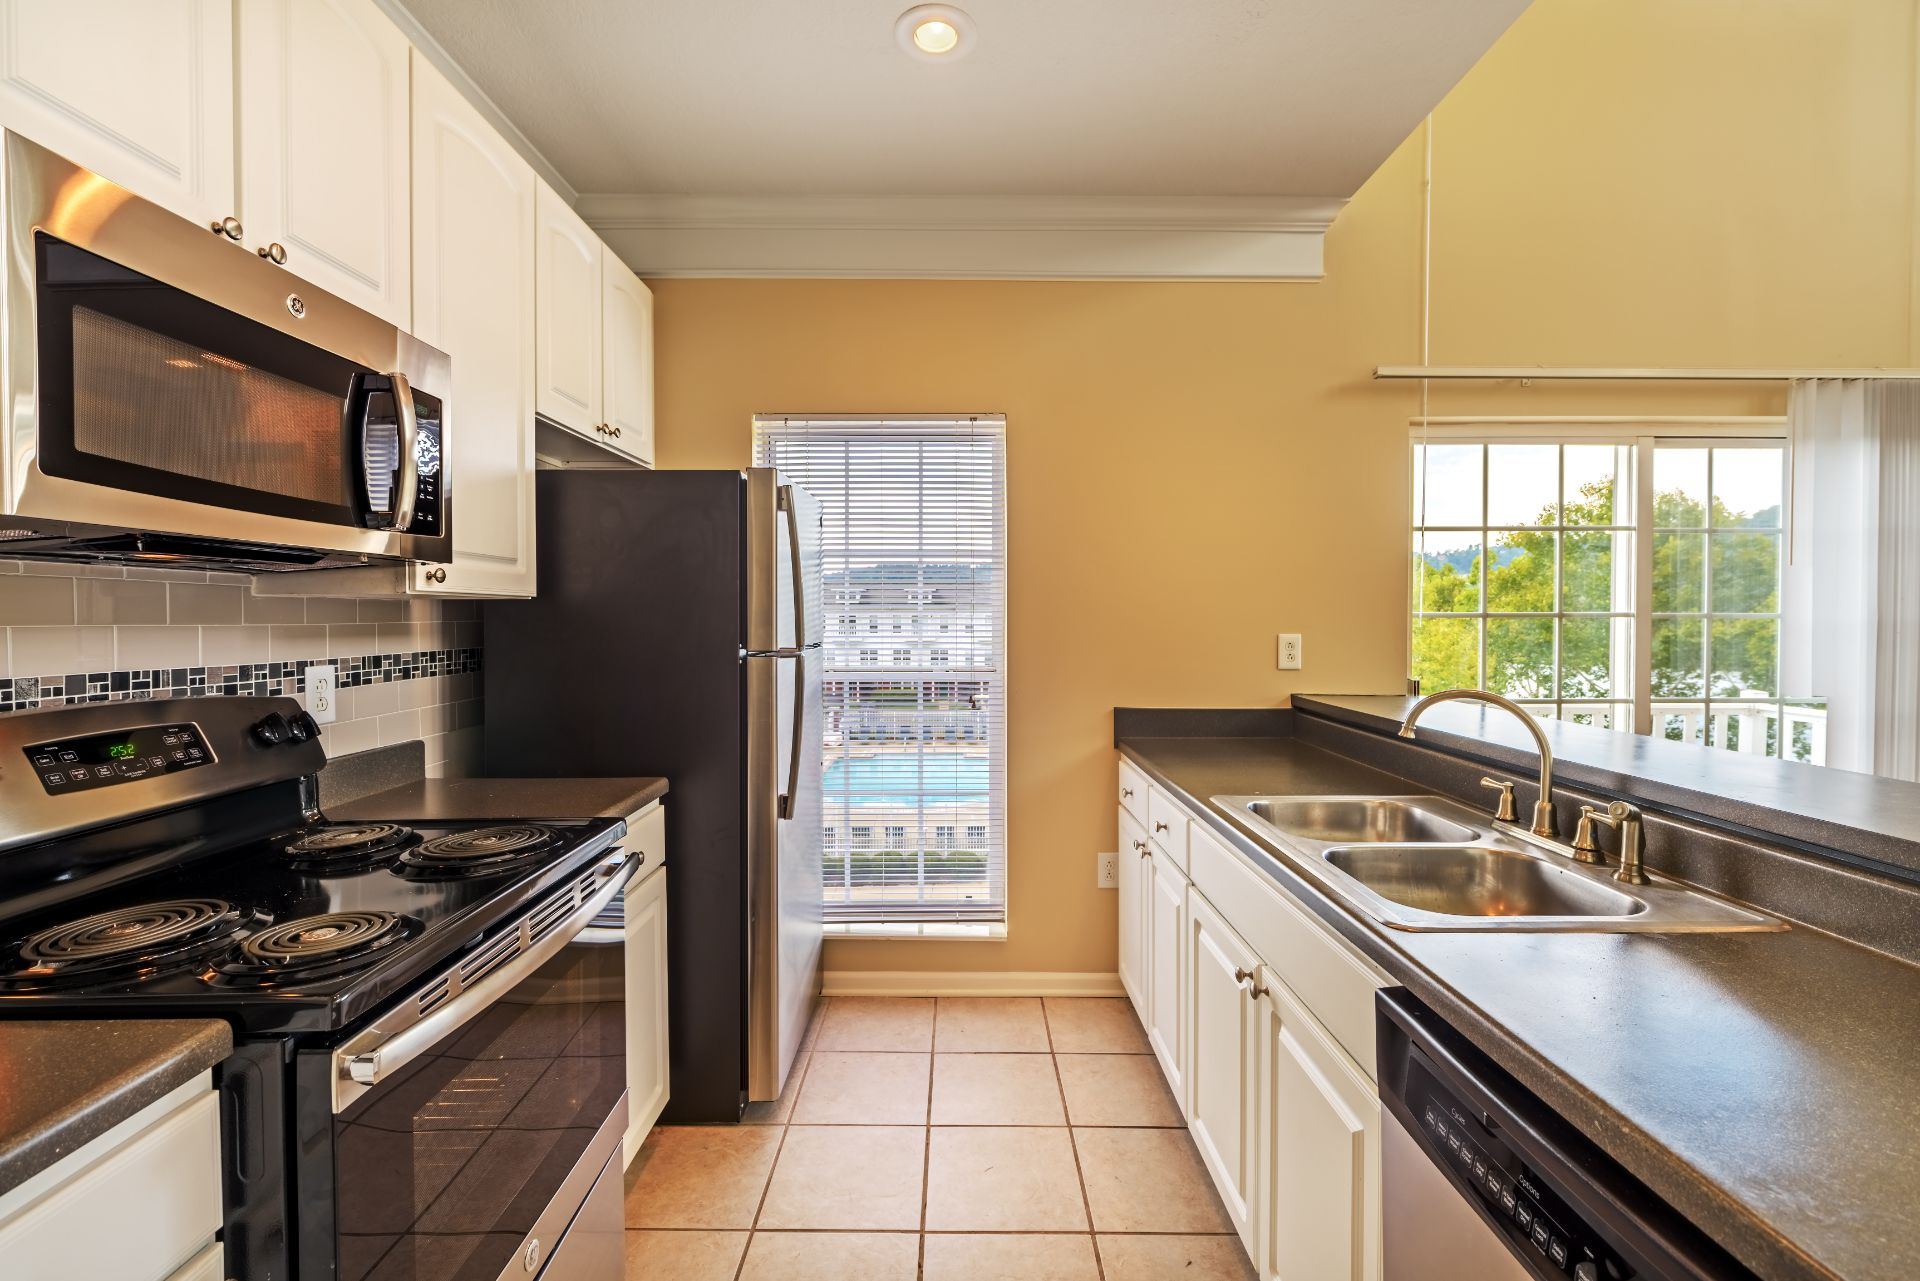 Luxury 1, 2 and 3 Bedroom Apartments and Townhomes with Open-Concept,  Gourmet Kitchens, Stainless Appliances, Washer Dryer, and River Views,   611 E. Waterfront Drive, Munhall, PA 15120